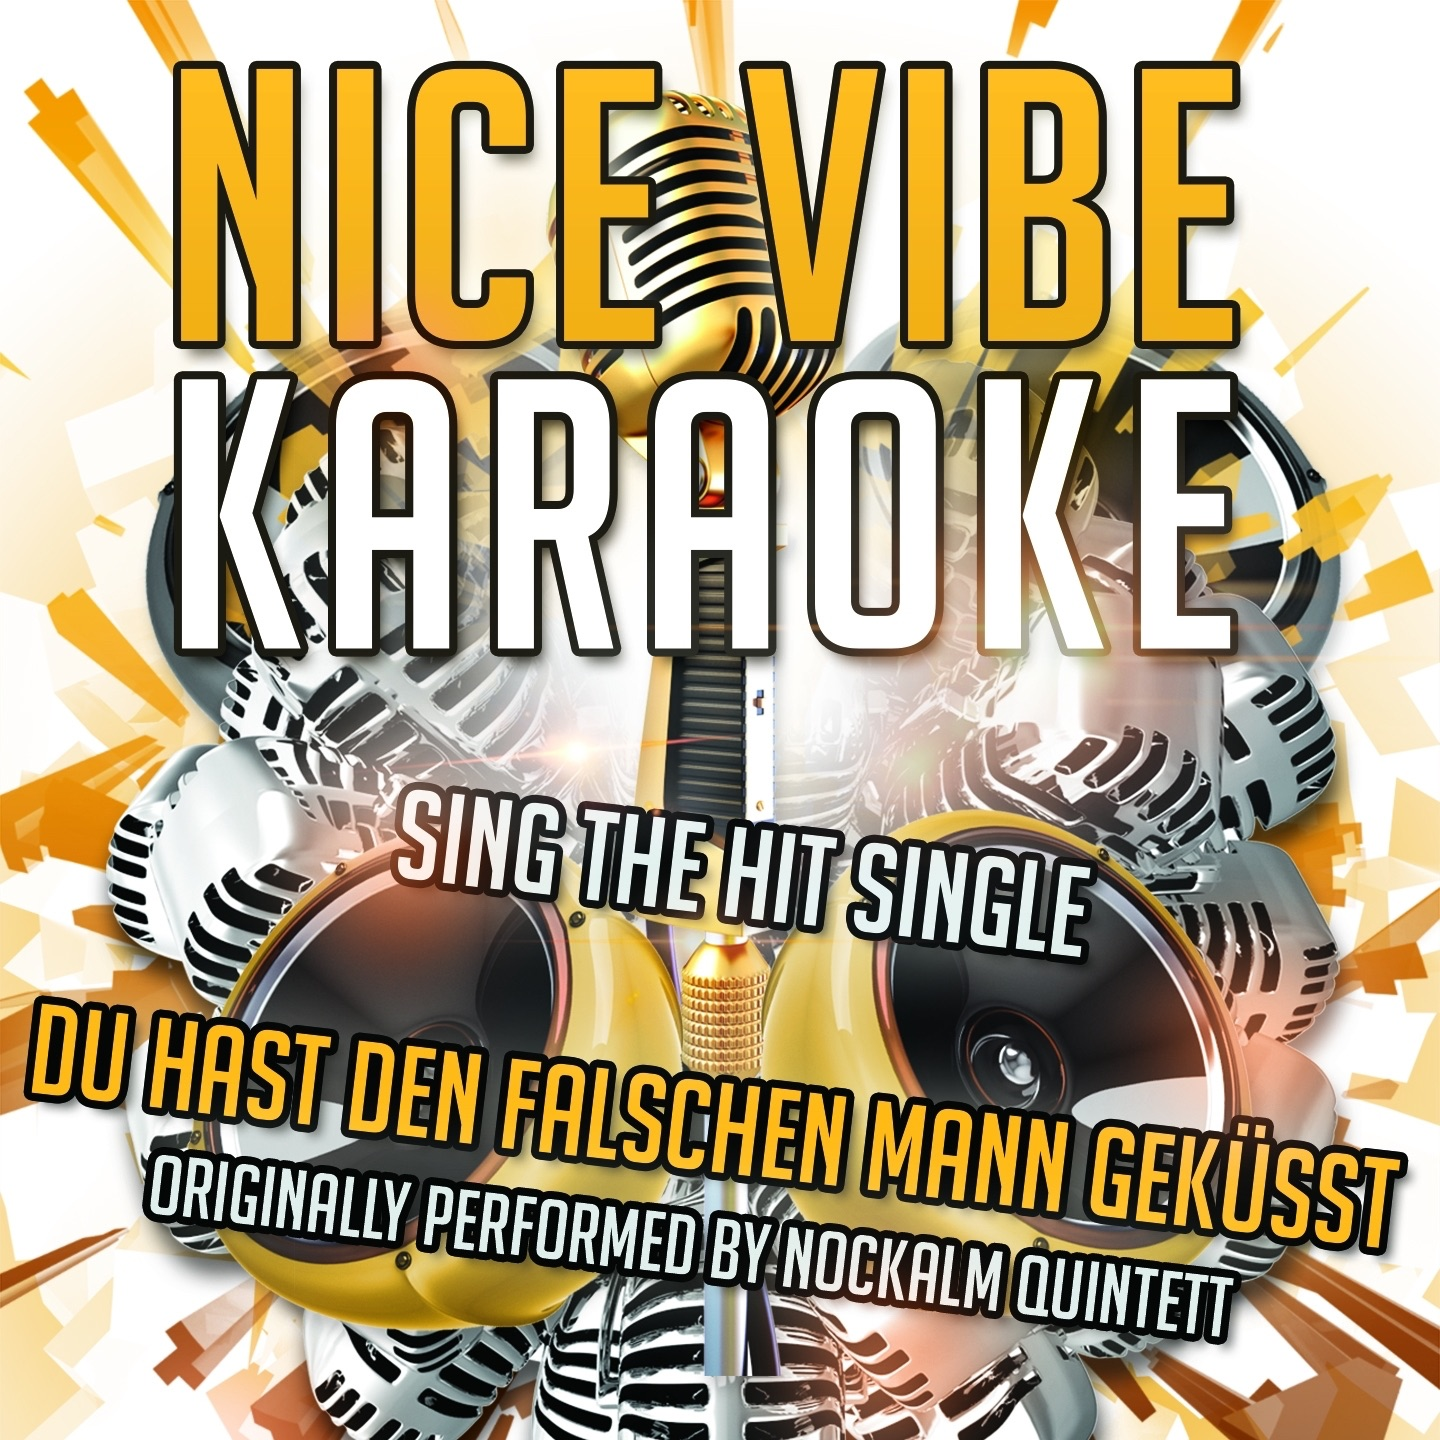 Du hast den falschen Mann geküsst (Originally Performed By Nockalm Quintett) [Karaoke Version] - Single